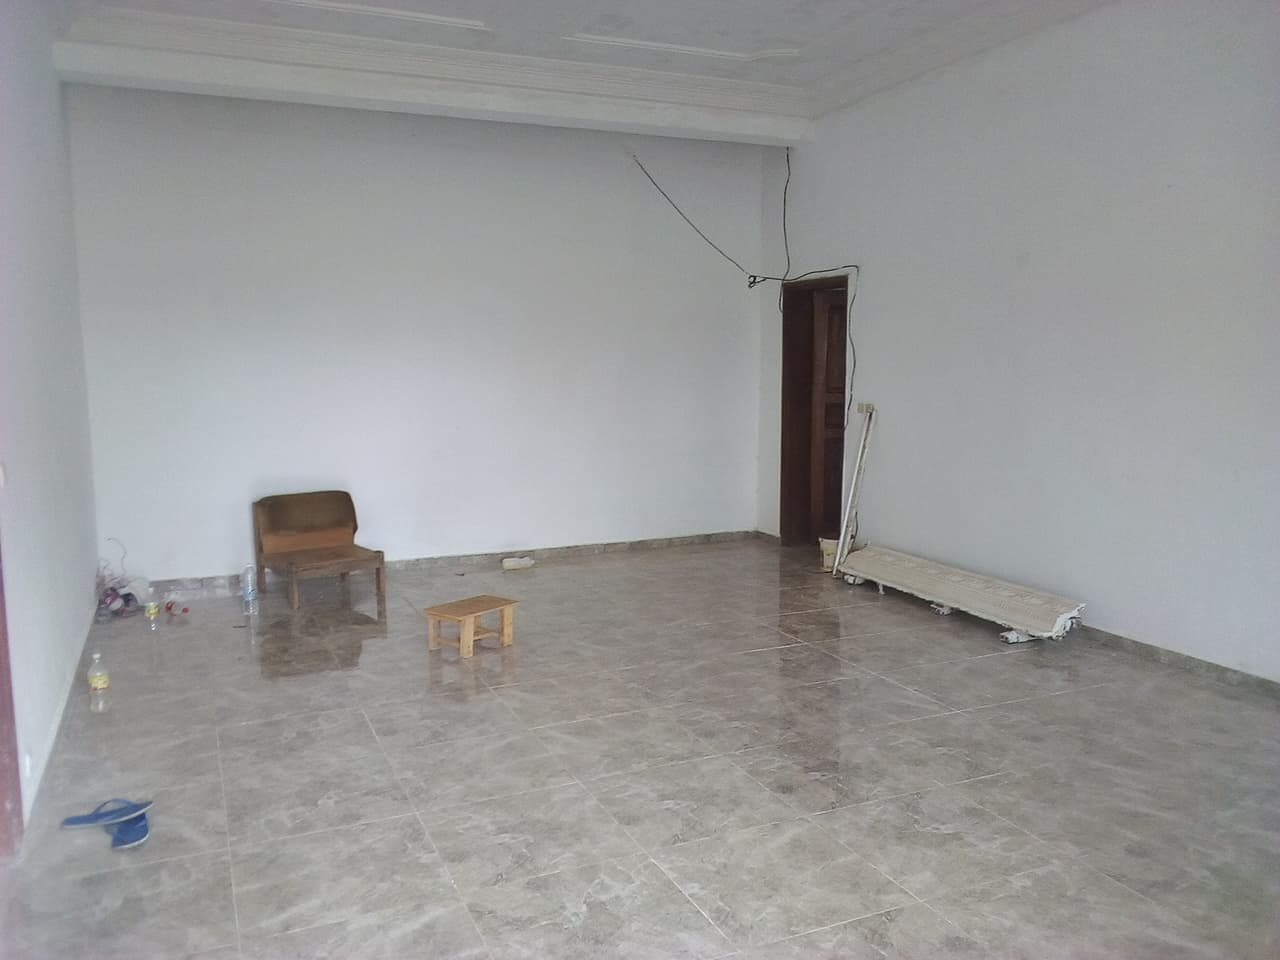 House (Villa) to rent - Yaoundé, Bastos, pas loin du black - 1 living room(s), 4 bedroom(s), 3 bathroom(s) - 1 200 000 FCFA / month